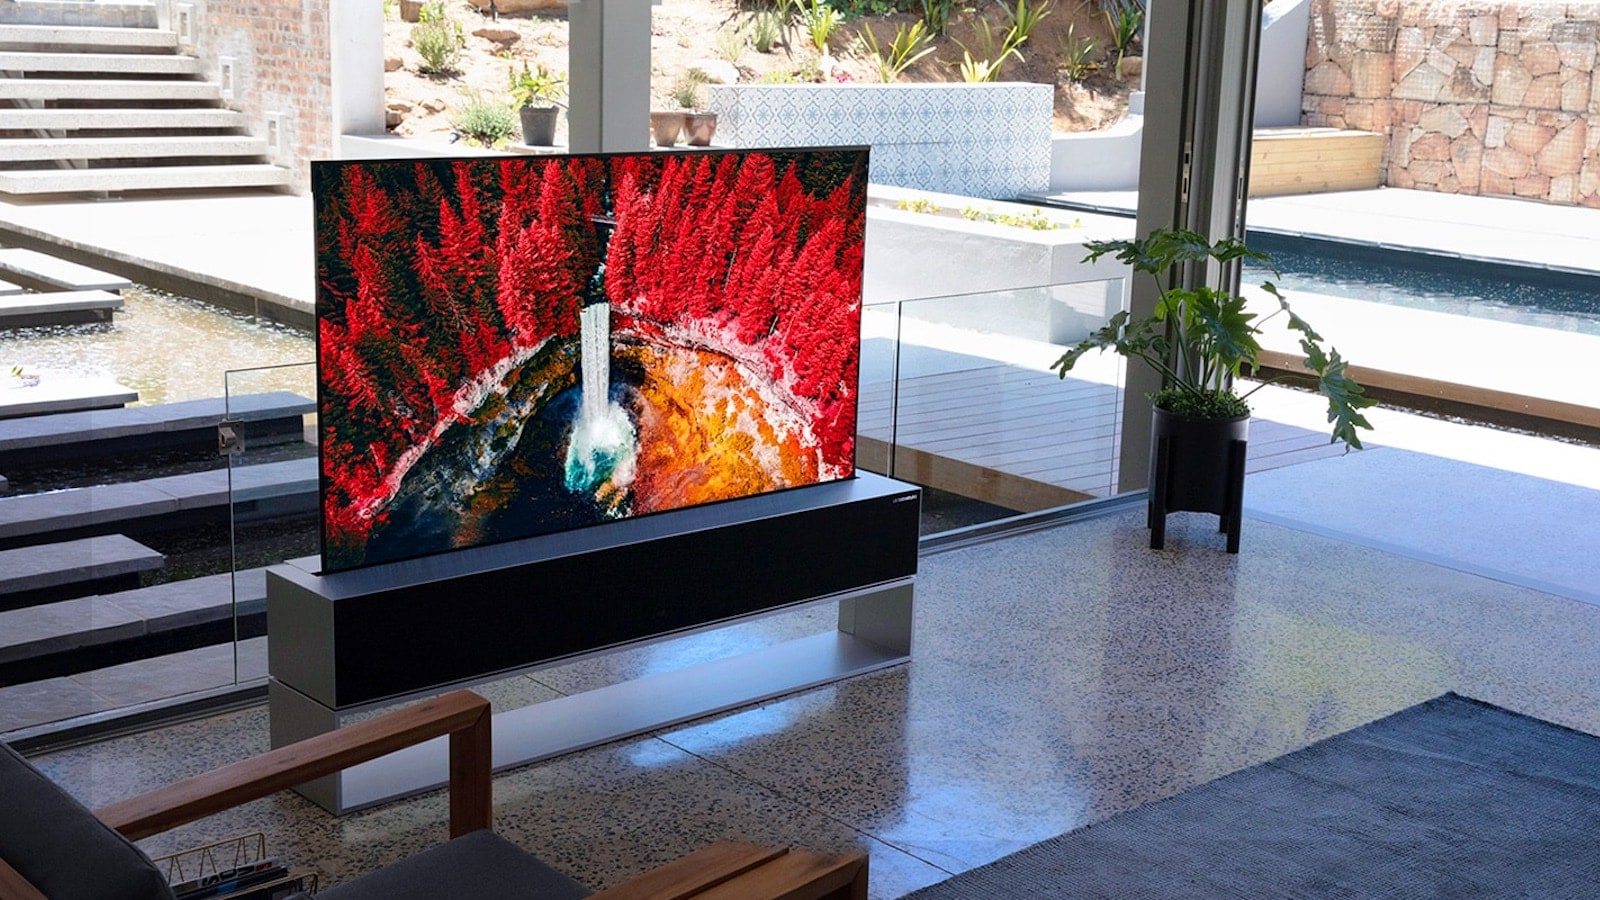 LG SIGNATURE OLED R rollable TV boasts an ultra-thin screen that transforms into a speaker